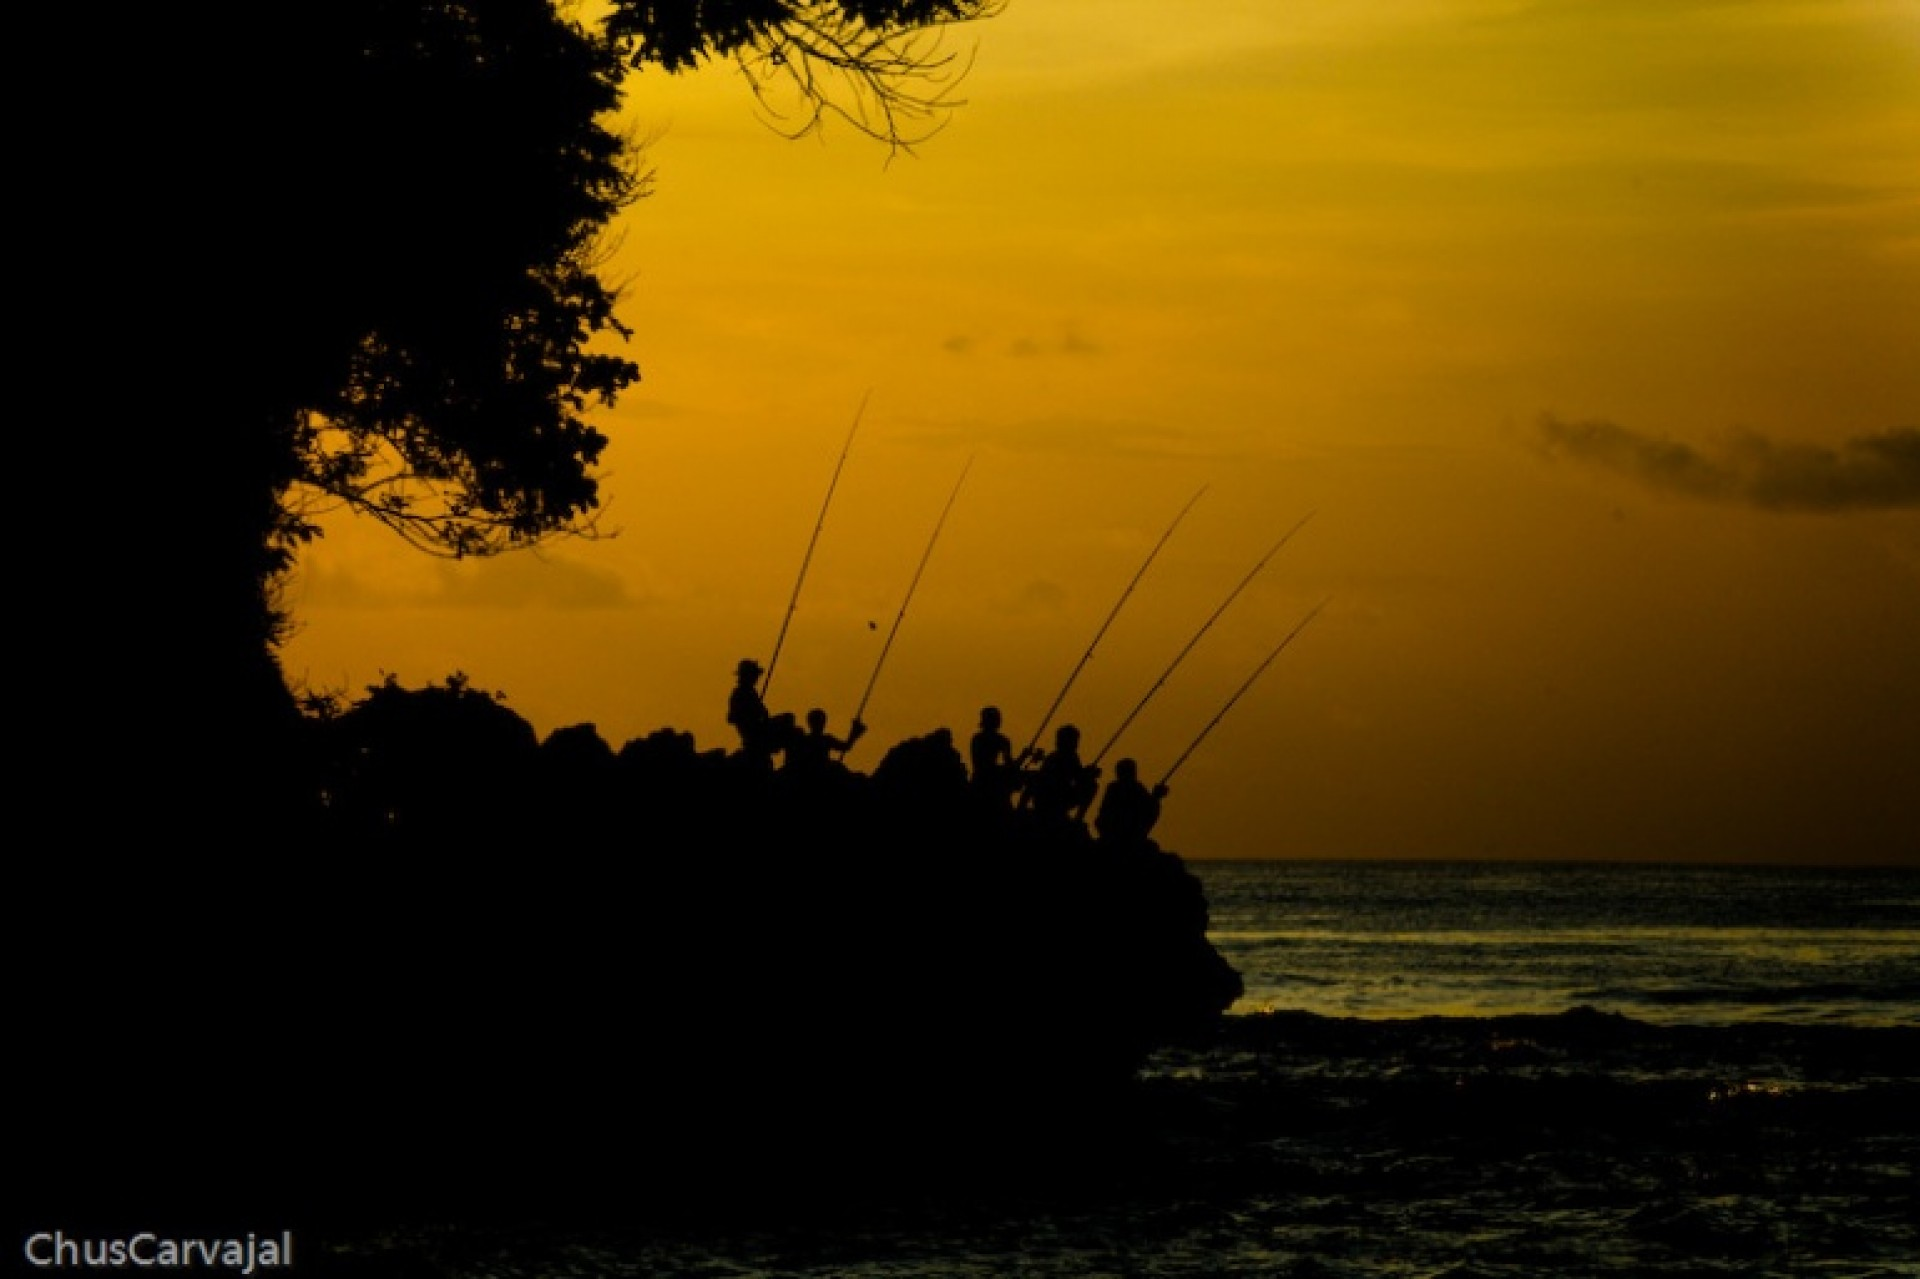 Chus Carvajal's photo of Uluwatu